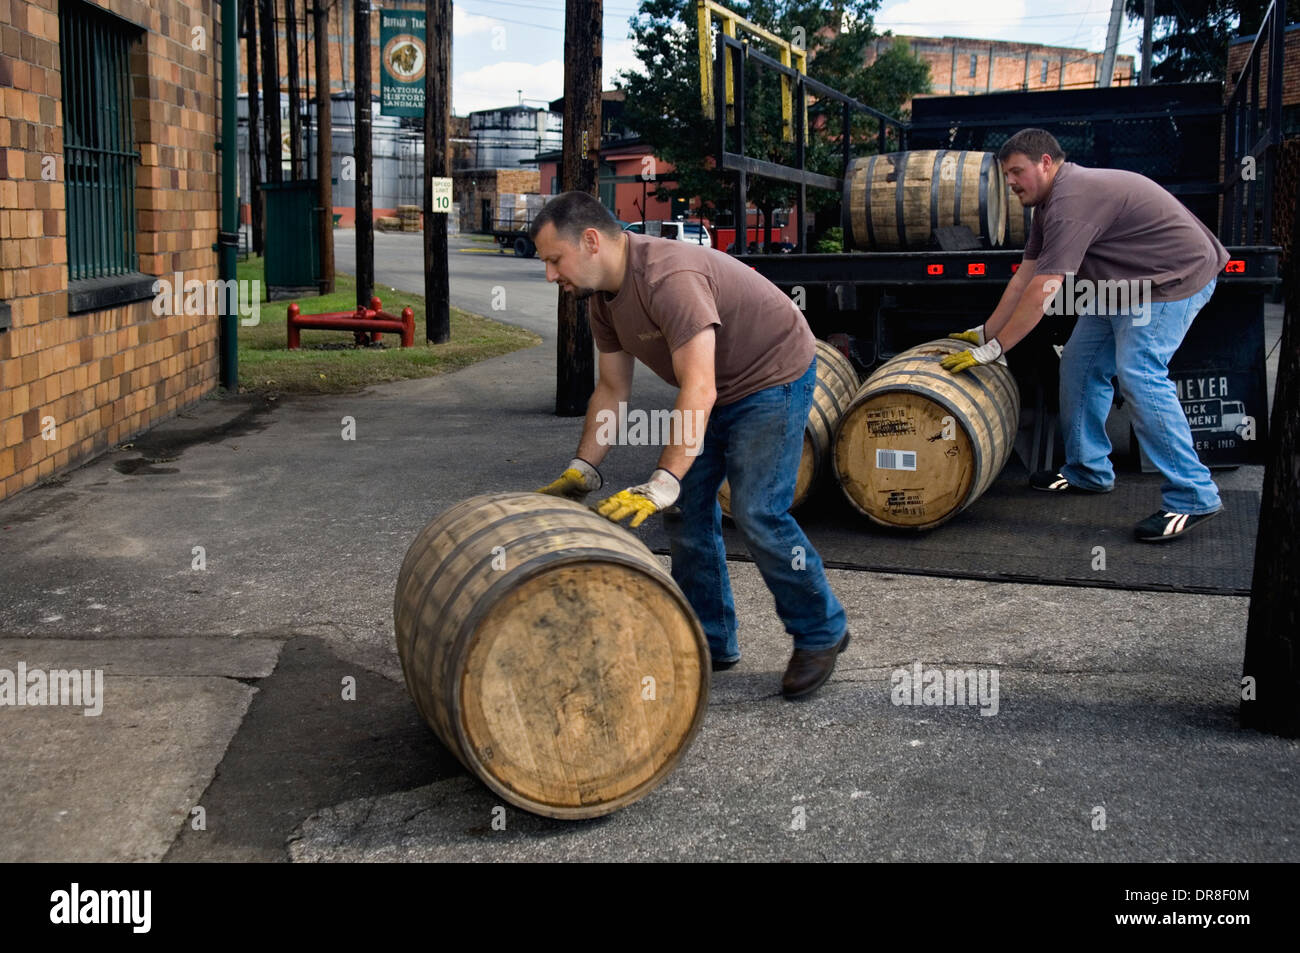 Workers at Buffalo Trace Distillery Rolling Barrels of Bourbon into Storage Building in Frankfort, Kentucky - Stock Image